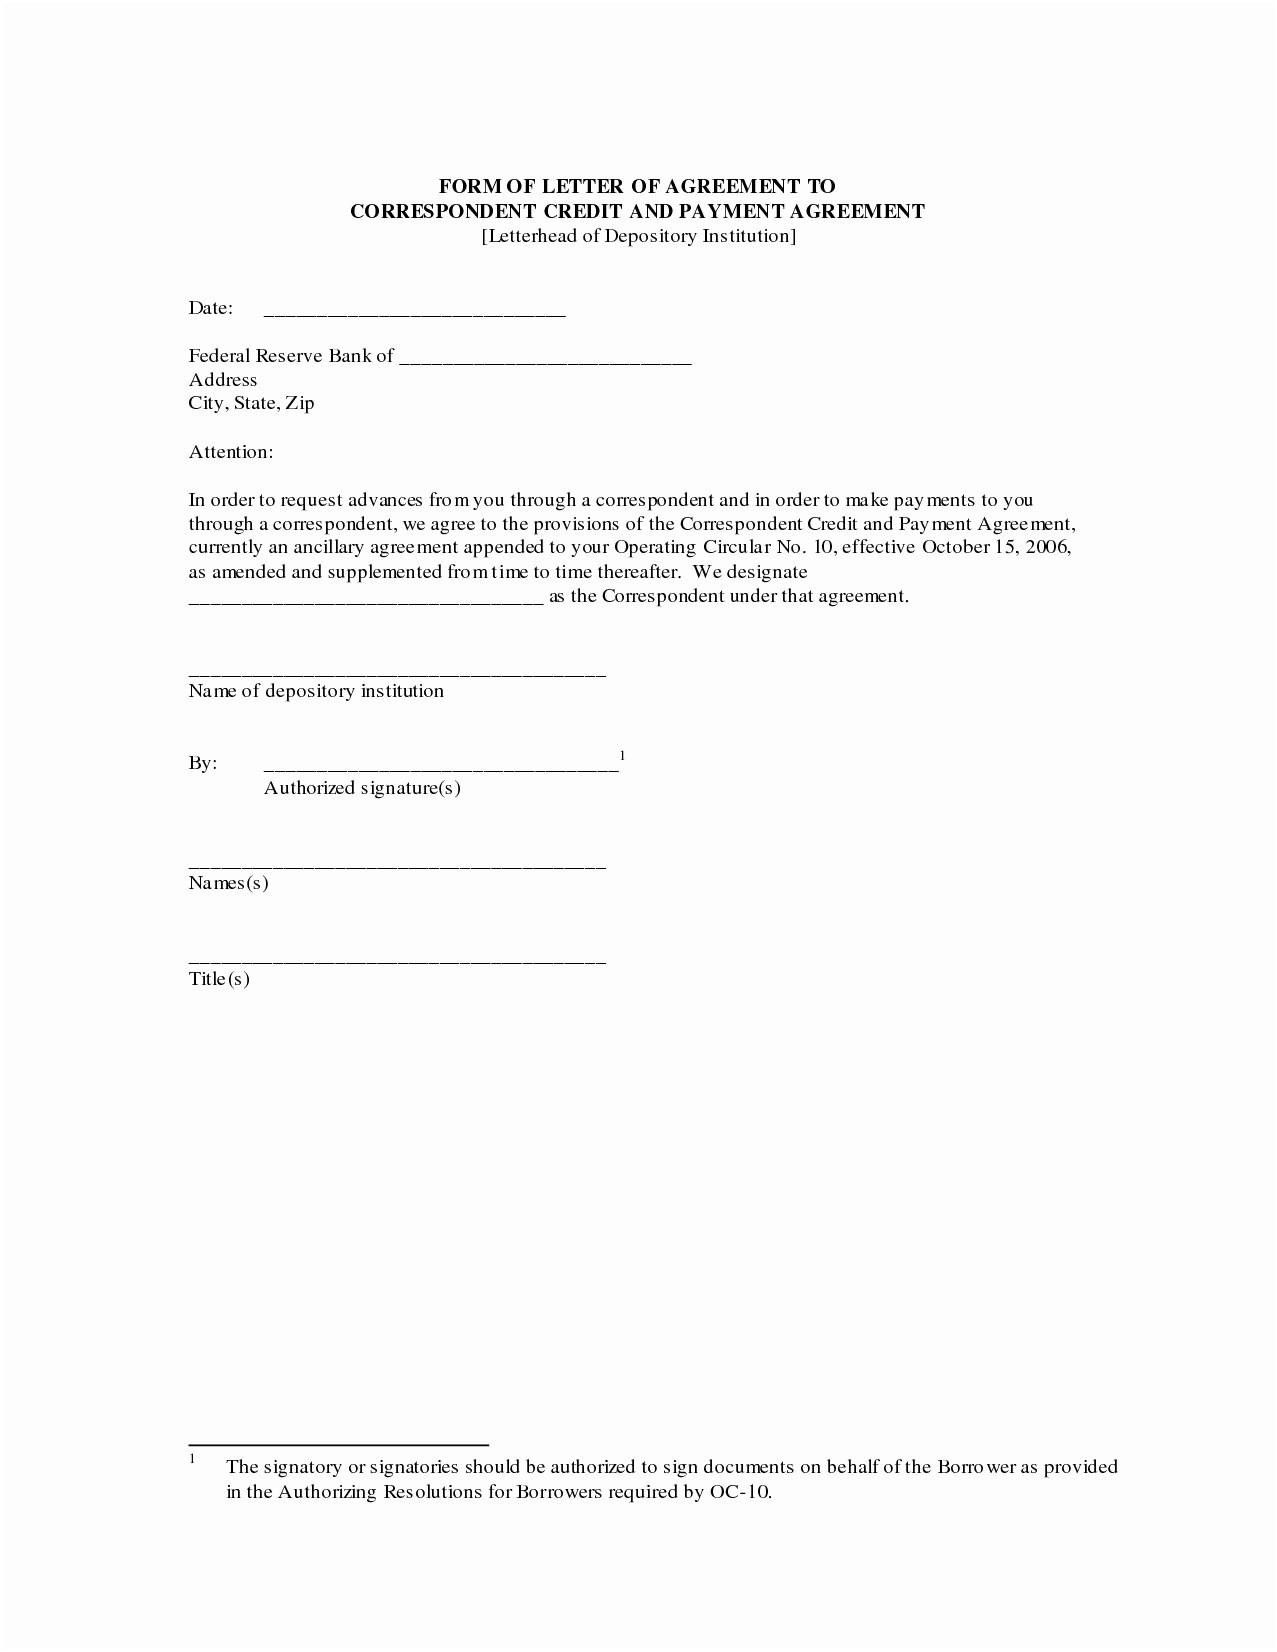 Accident Insurance Claim Form Template